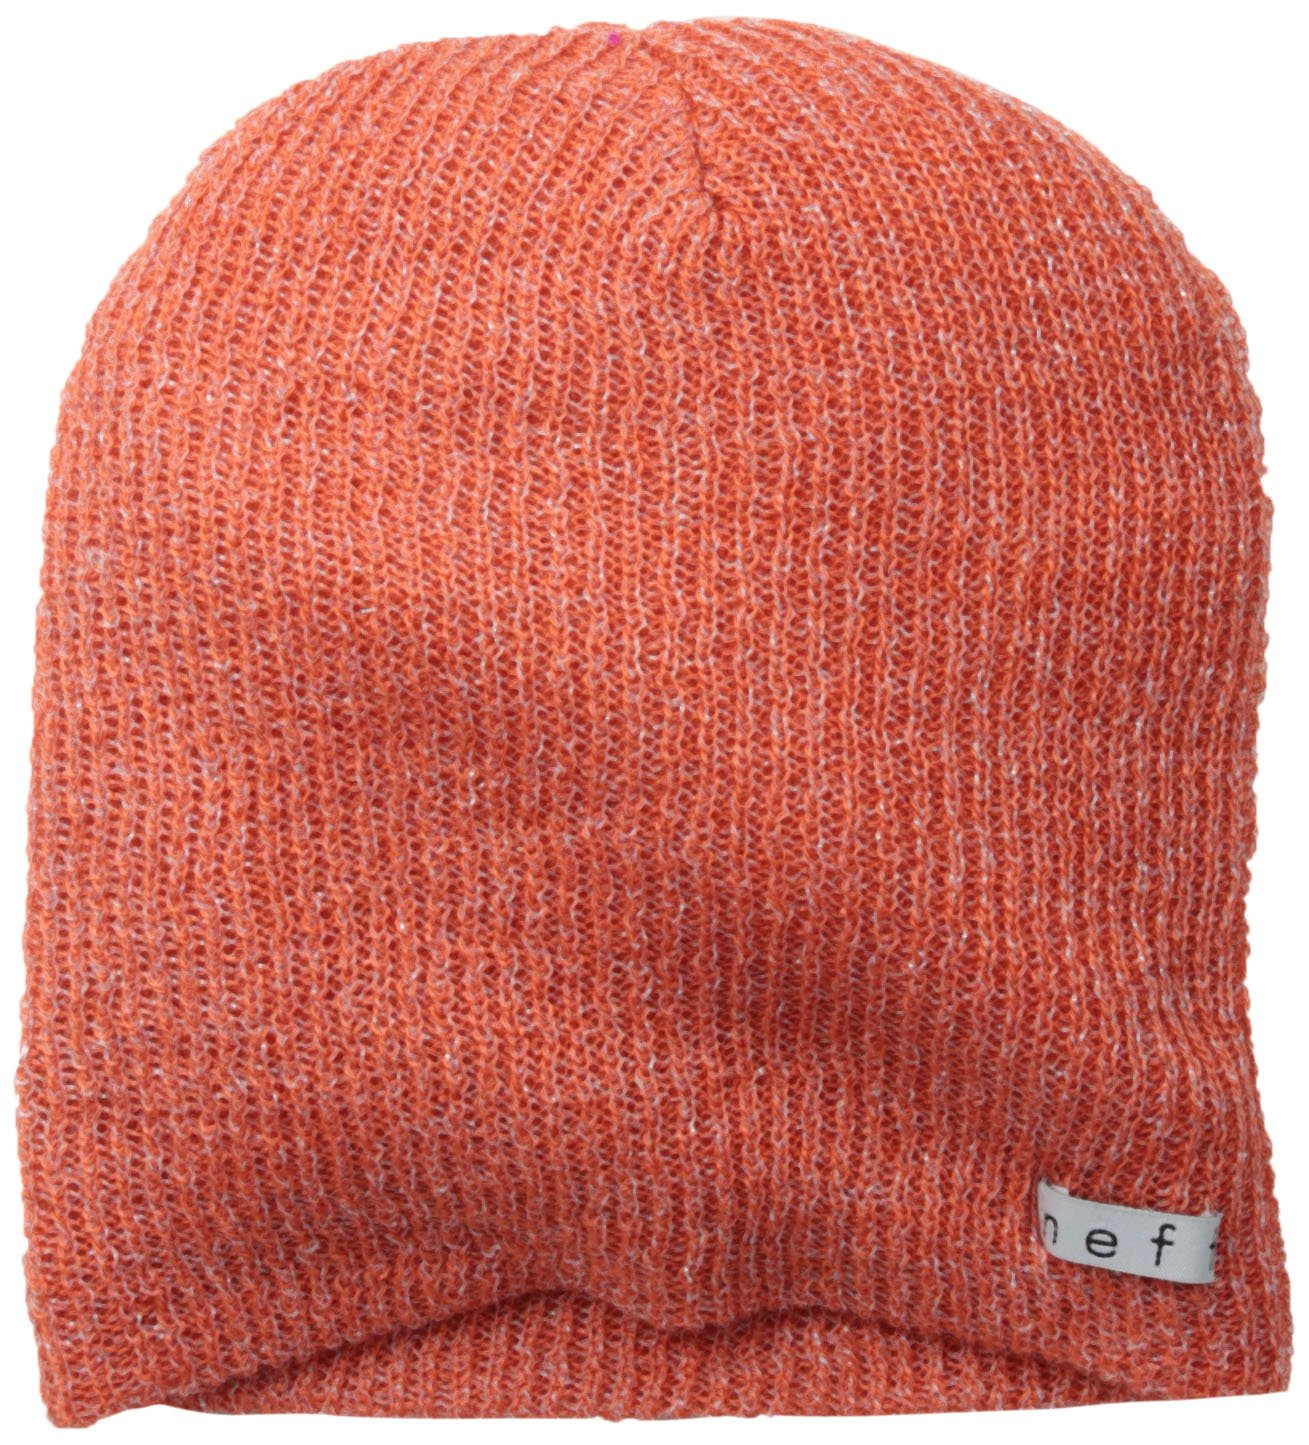 NEFF Women's Daily Sparkle Beanie, Coral, One Size